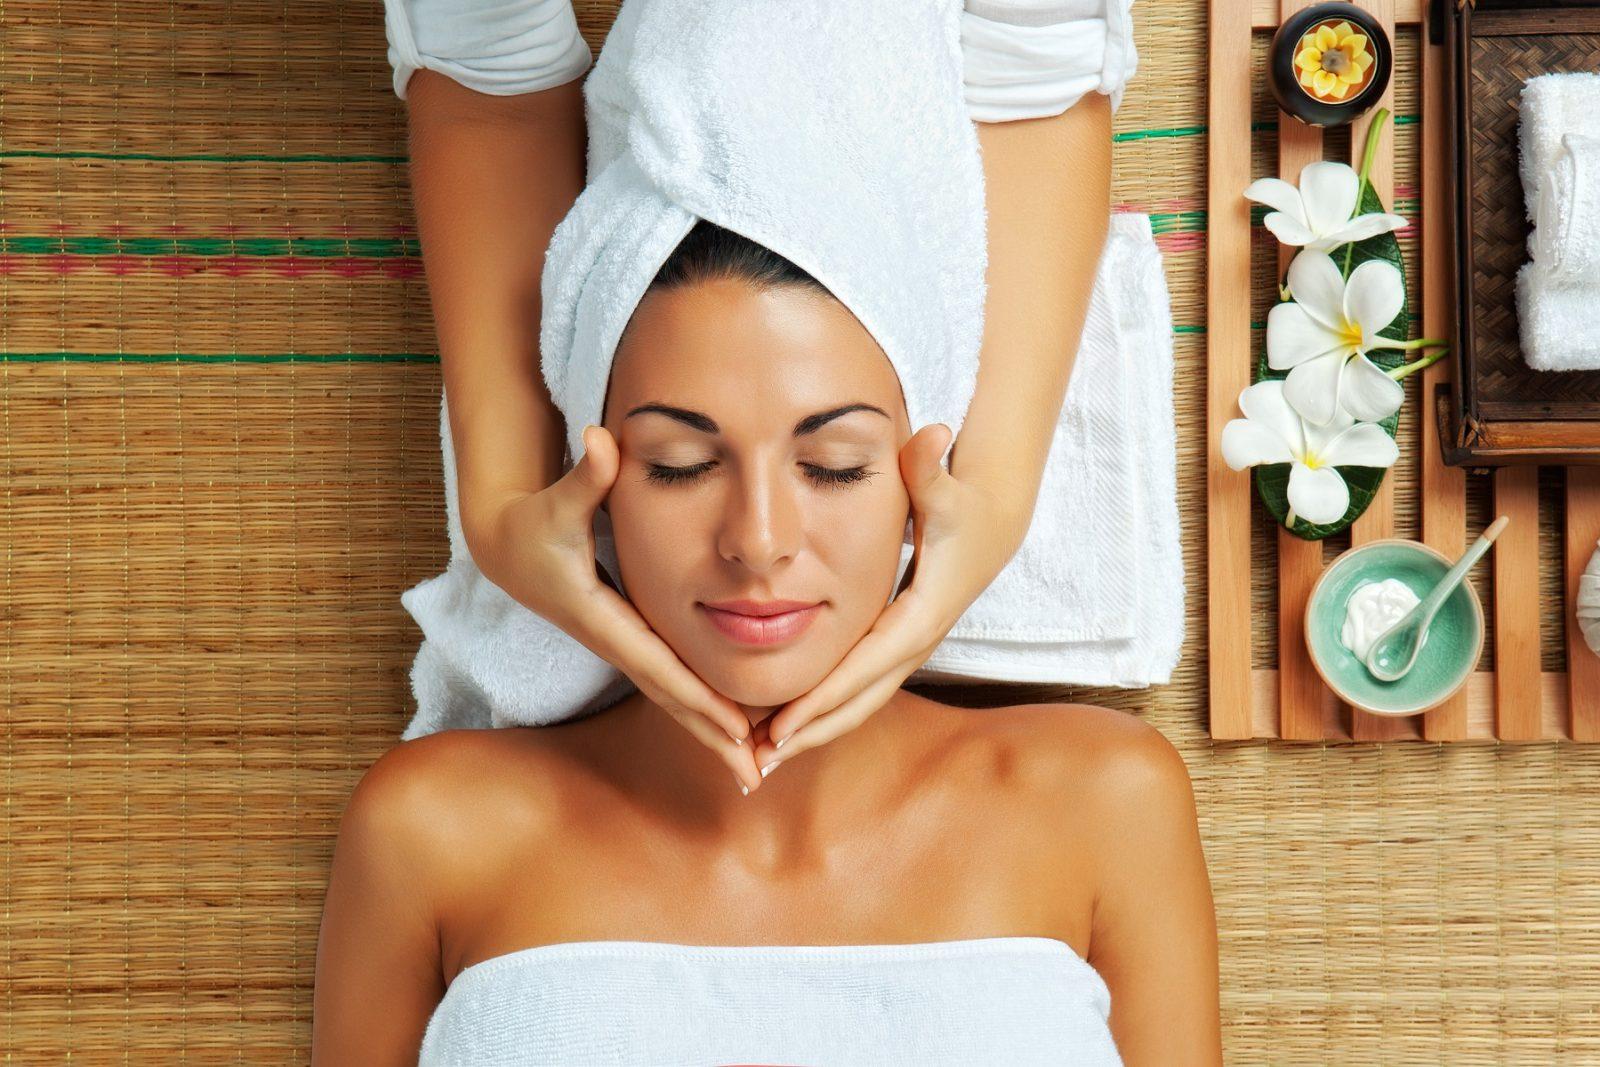 Quality me time at the spa. (ShutterStock)